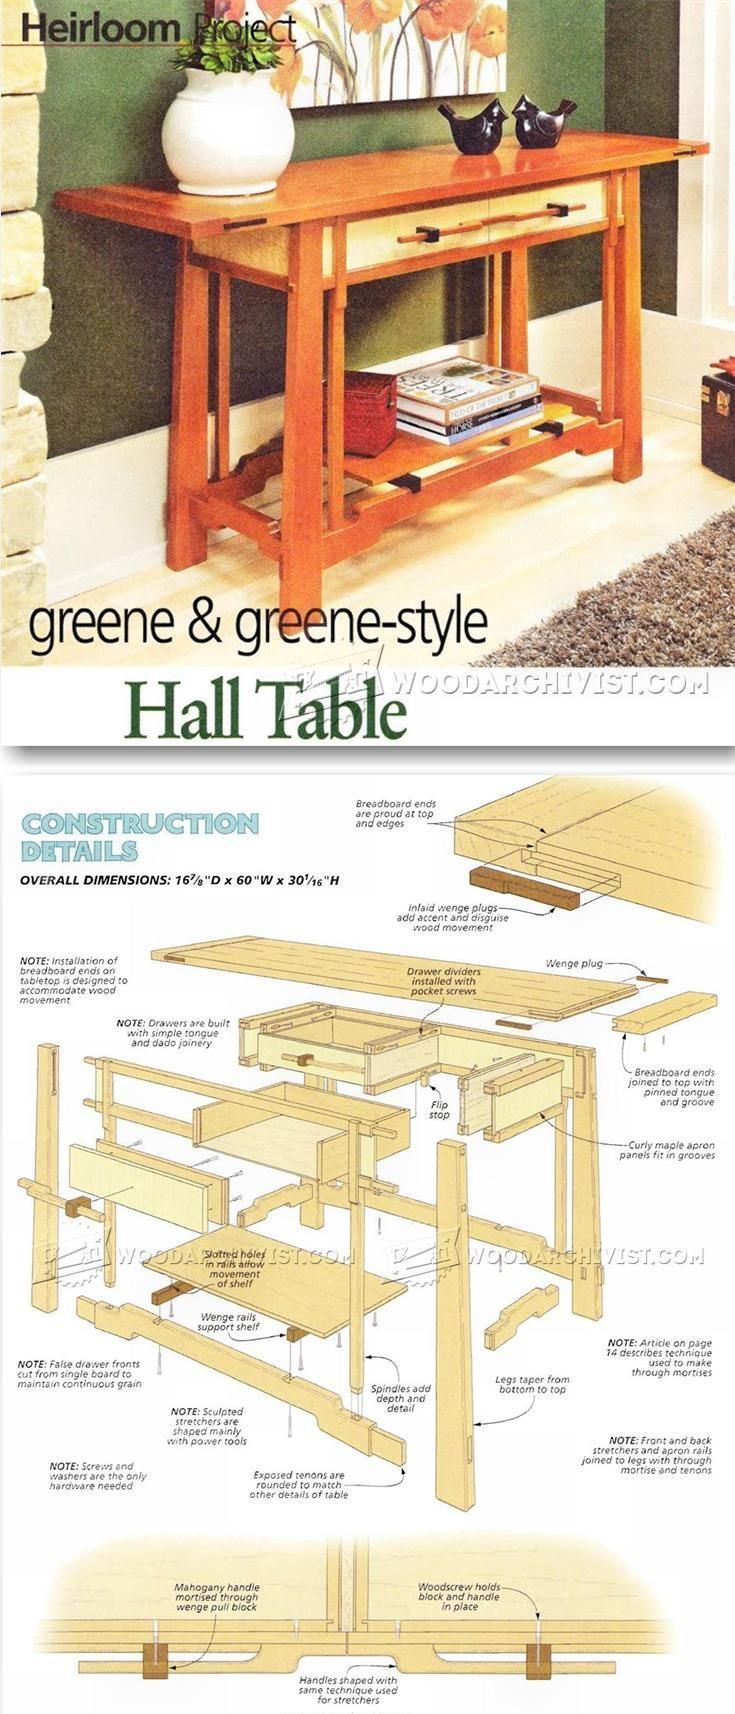 Hall Table Plans - Furniture Plans and Projects | http://WoodArchivist.com